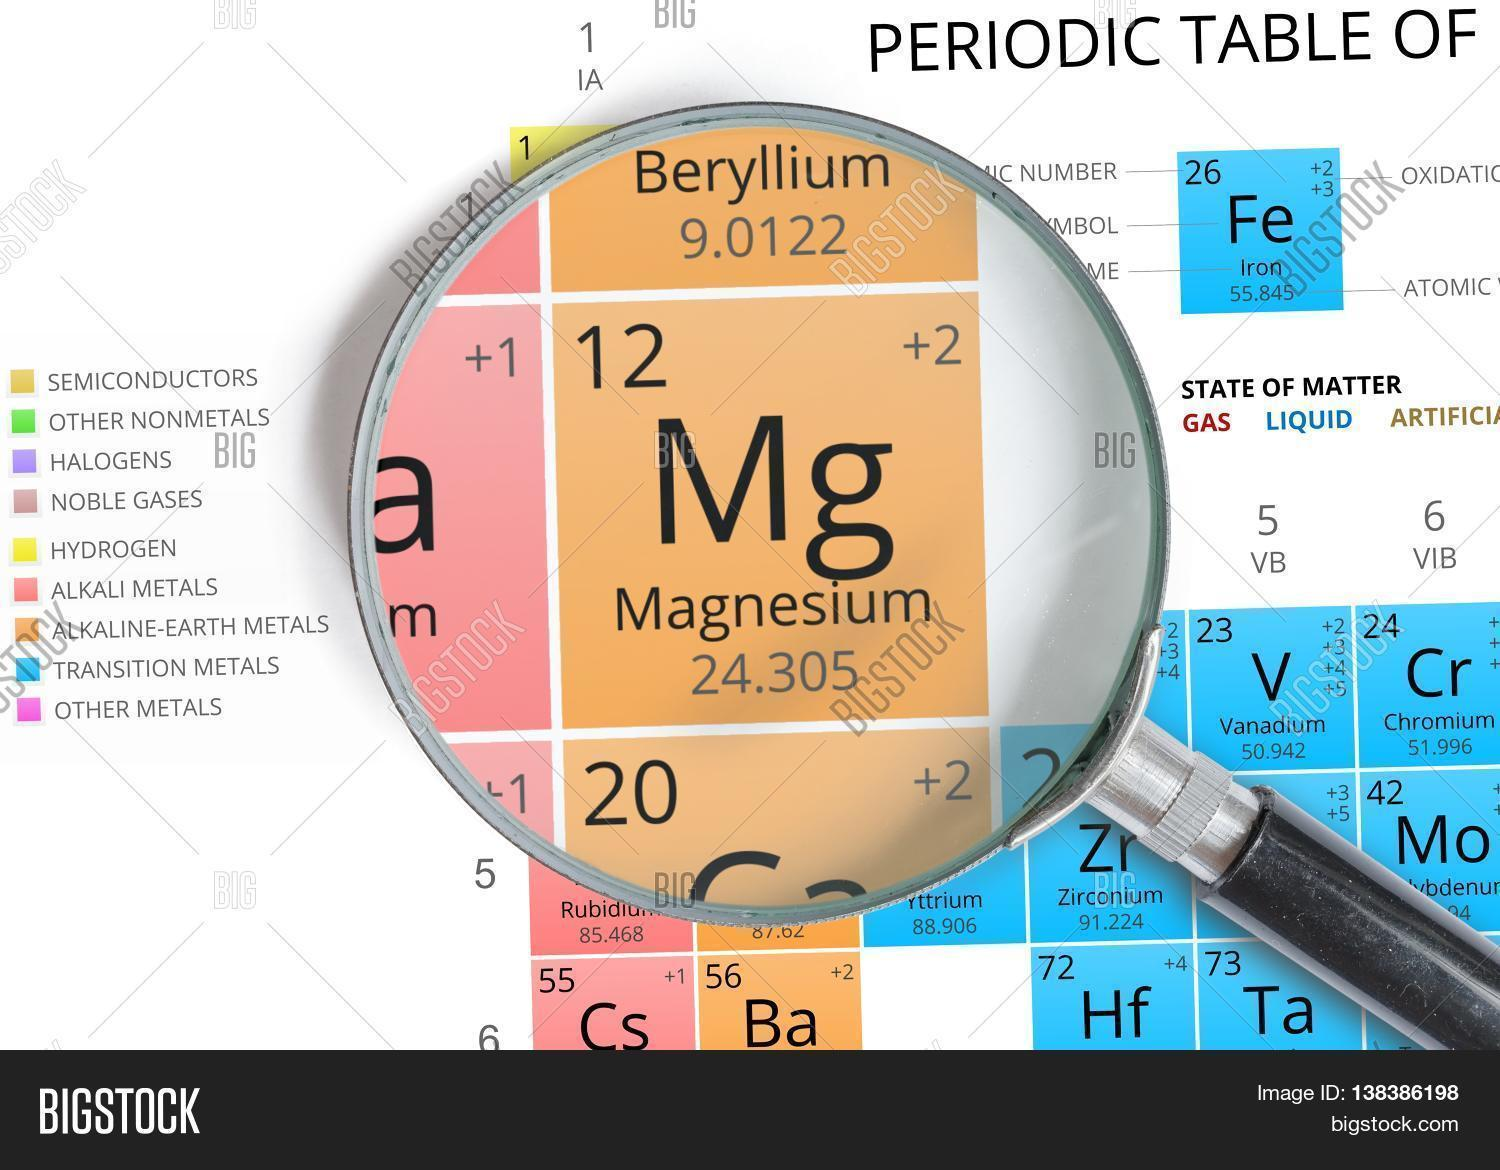 Magnesium symbol mg image photo free trial bigstock magnesium symbol mg element of the periodic table zoomed with urtaz Images